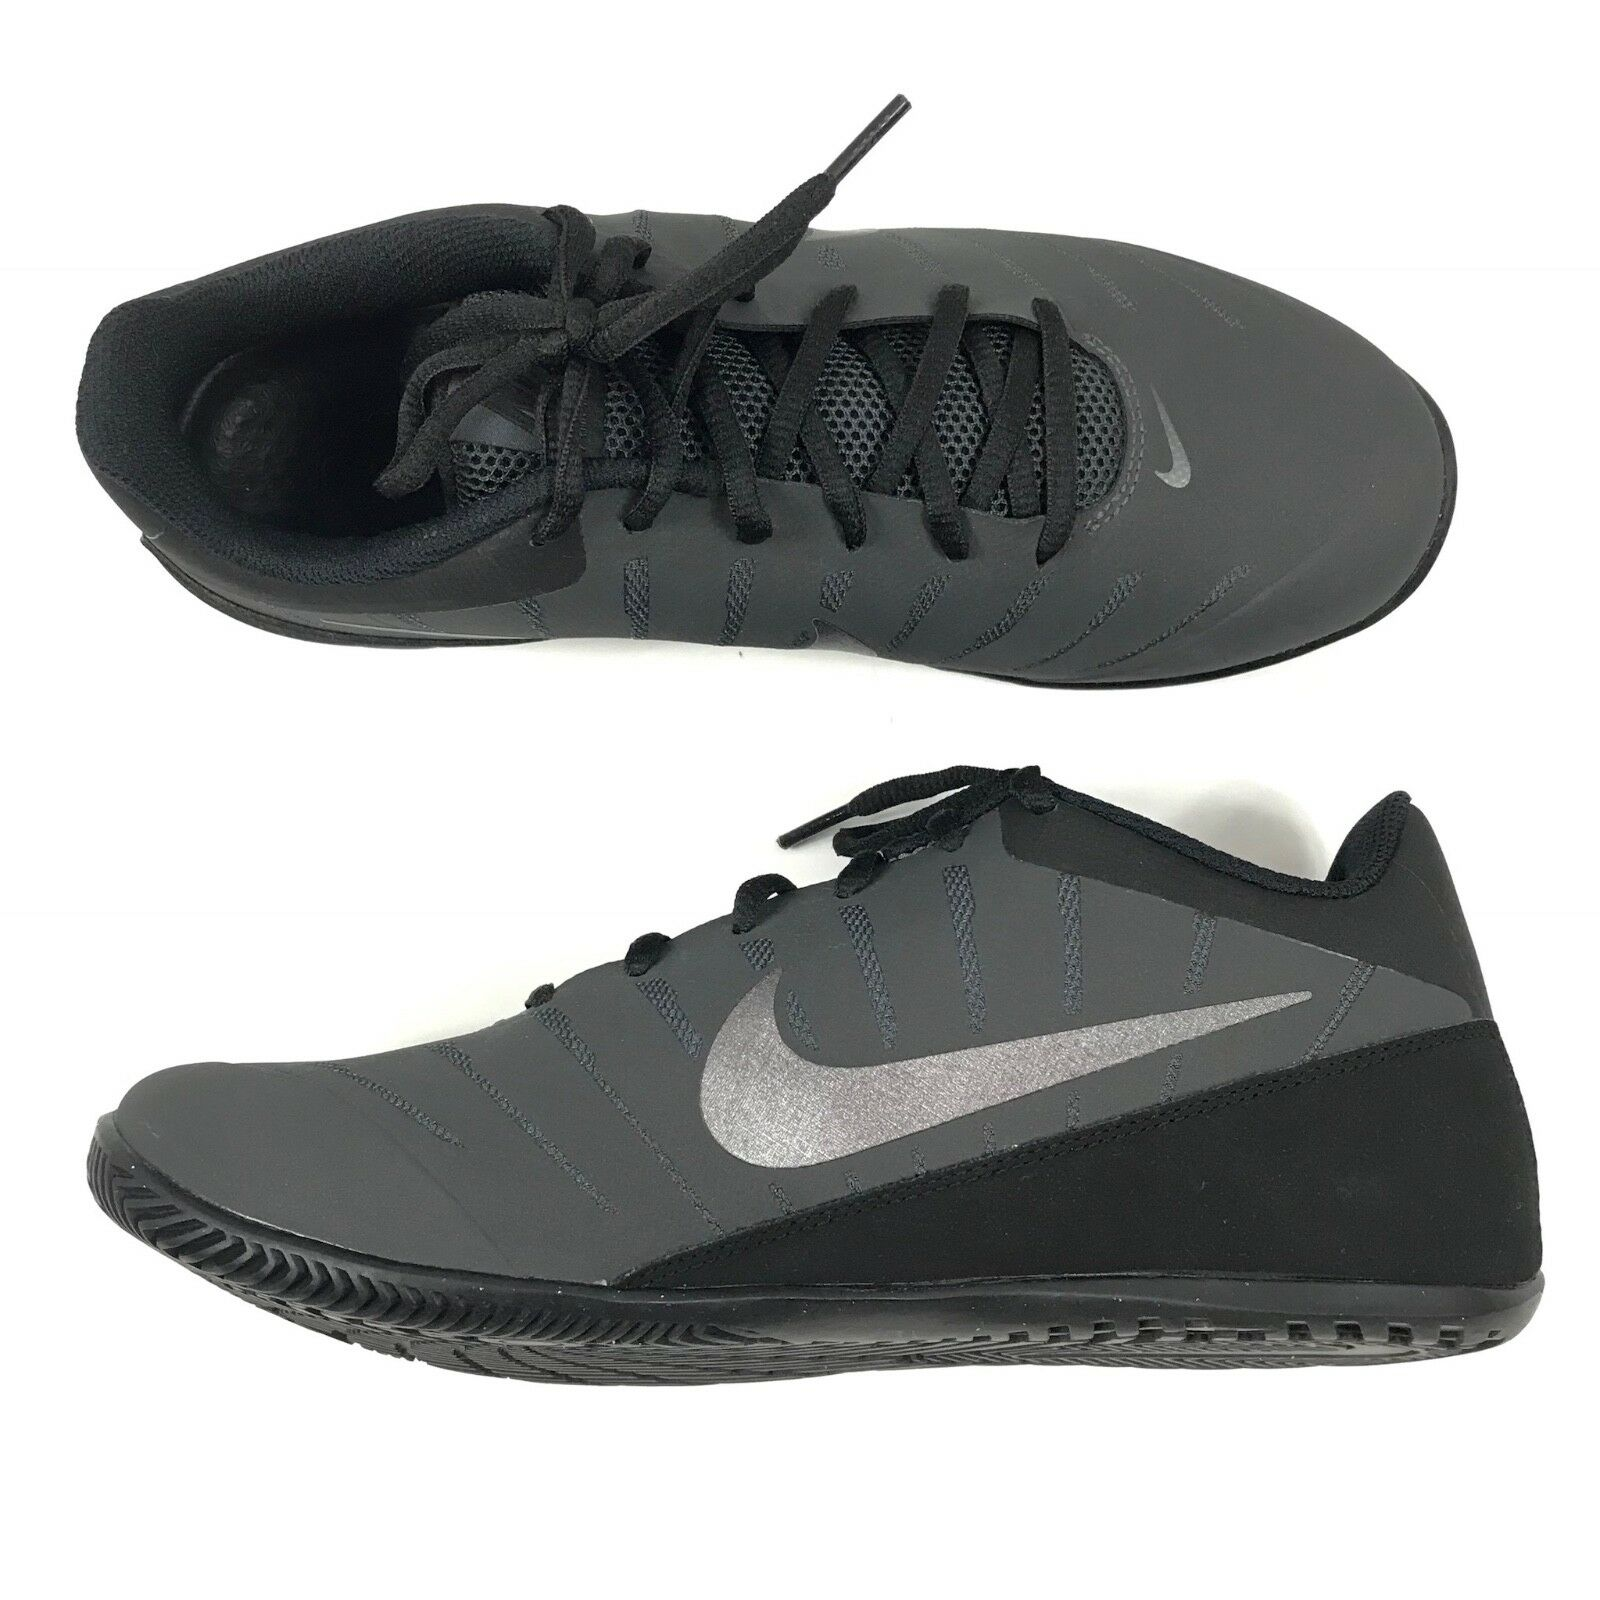 huge selection of c1780 e9790 ... Nike Mens Air Marvin Low Low Low 2 Basketball Shoes Anthracite Black Sz  7.5 830368- ...